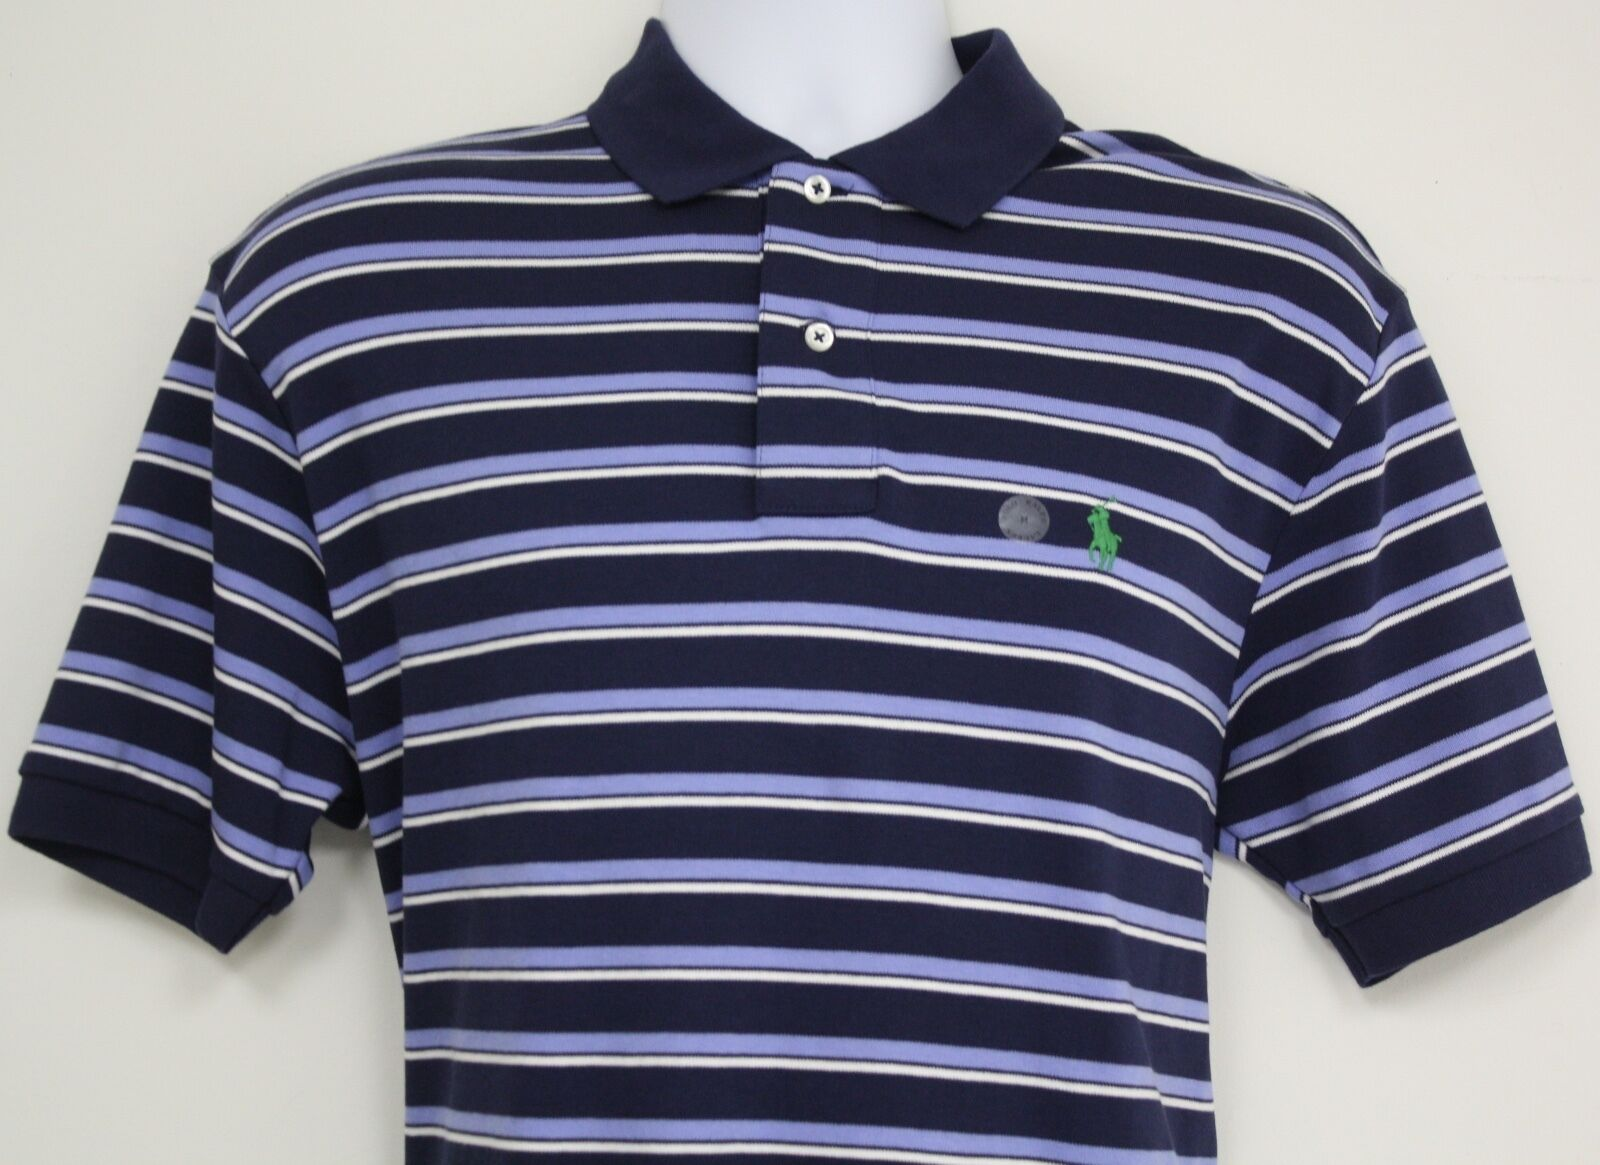 Polo Ralph Lauren shirt Navy bluee White striped shirt Green Pony logo Smooth